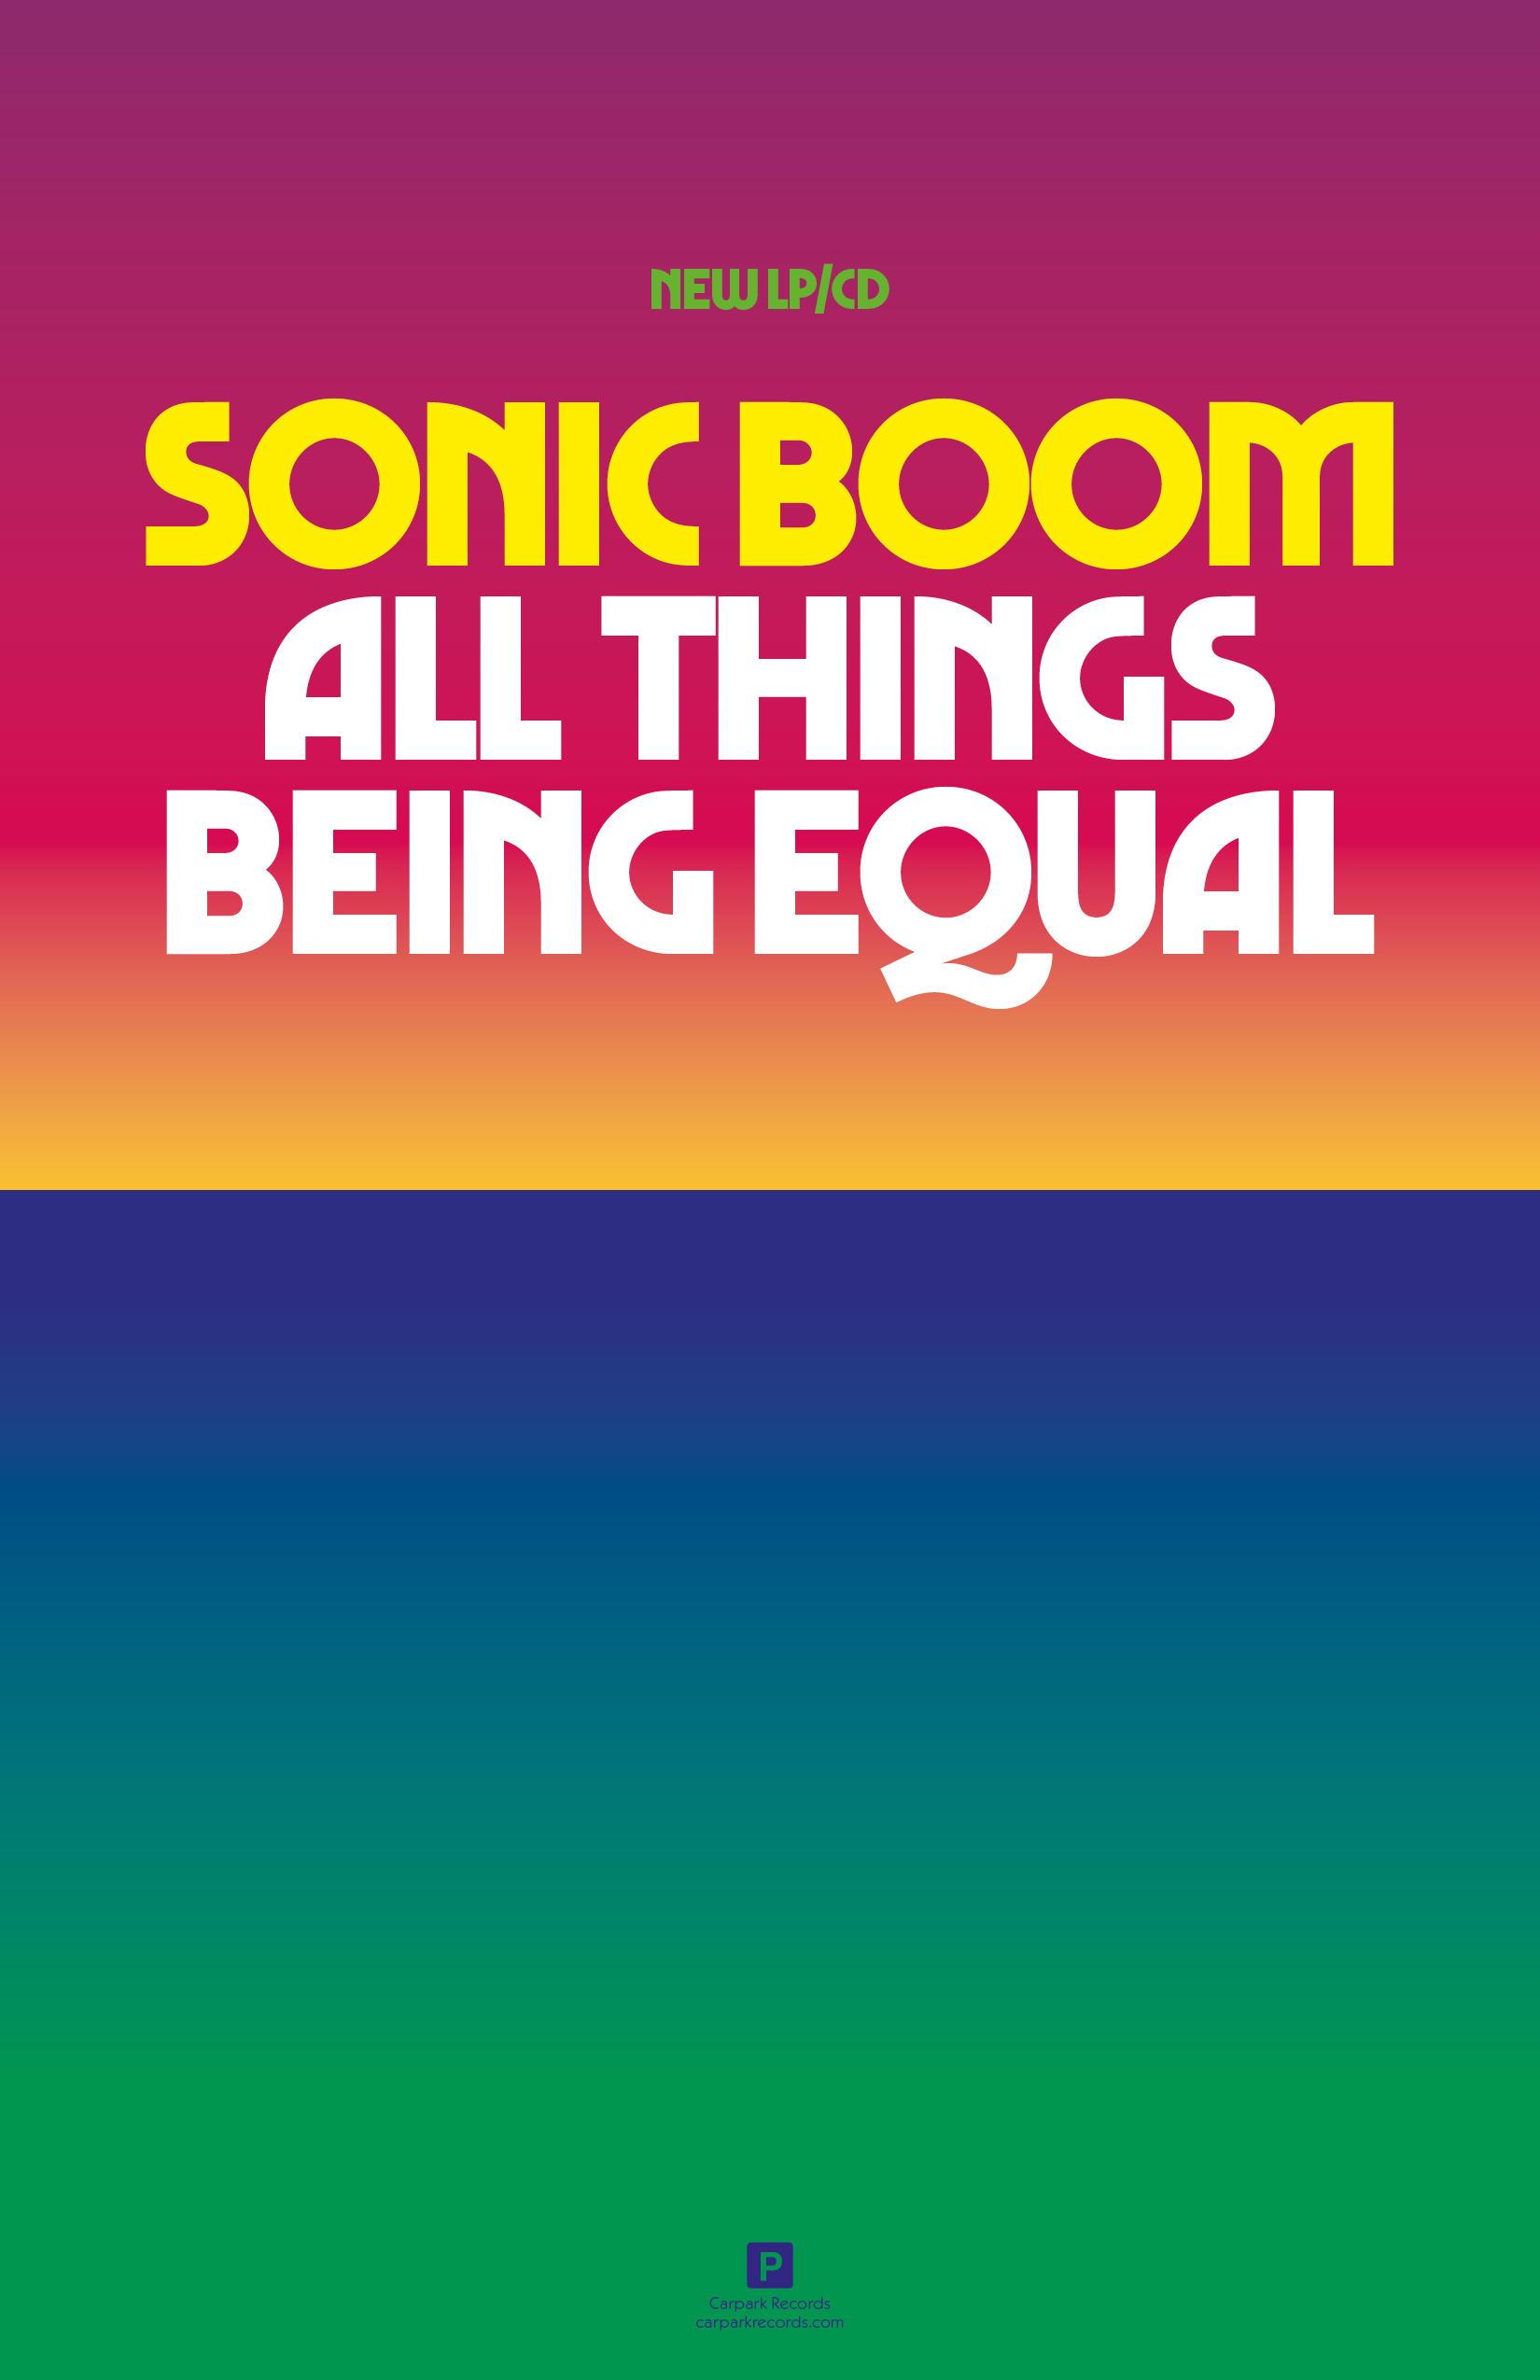 Sonic Boom 2020. New LP. All Things Being Equal.